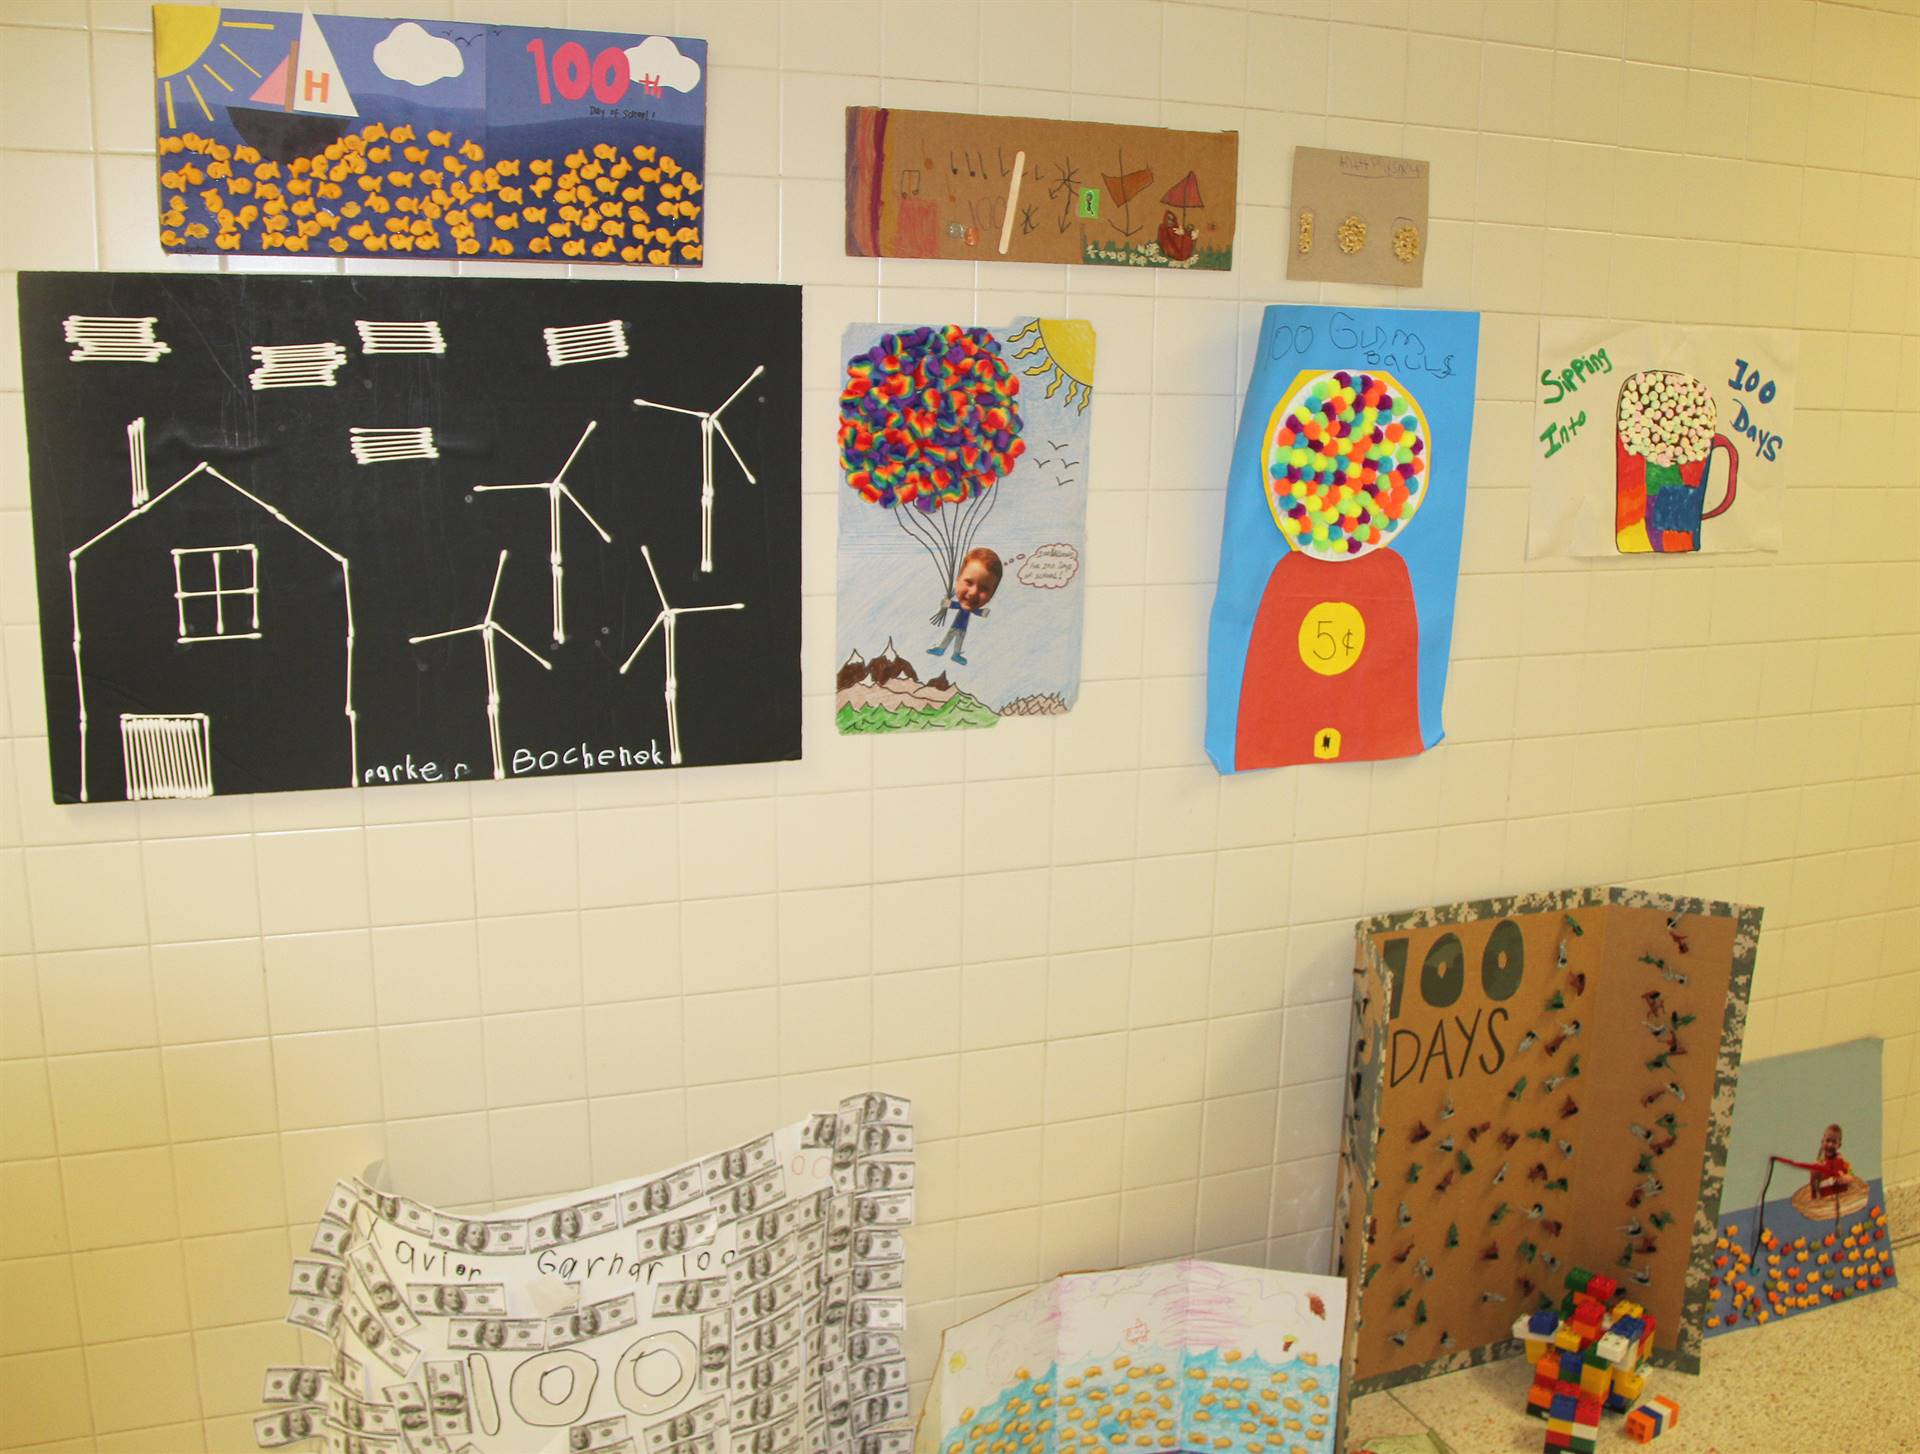 100 days of school projects in hallway